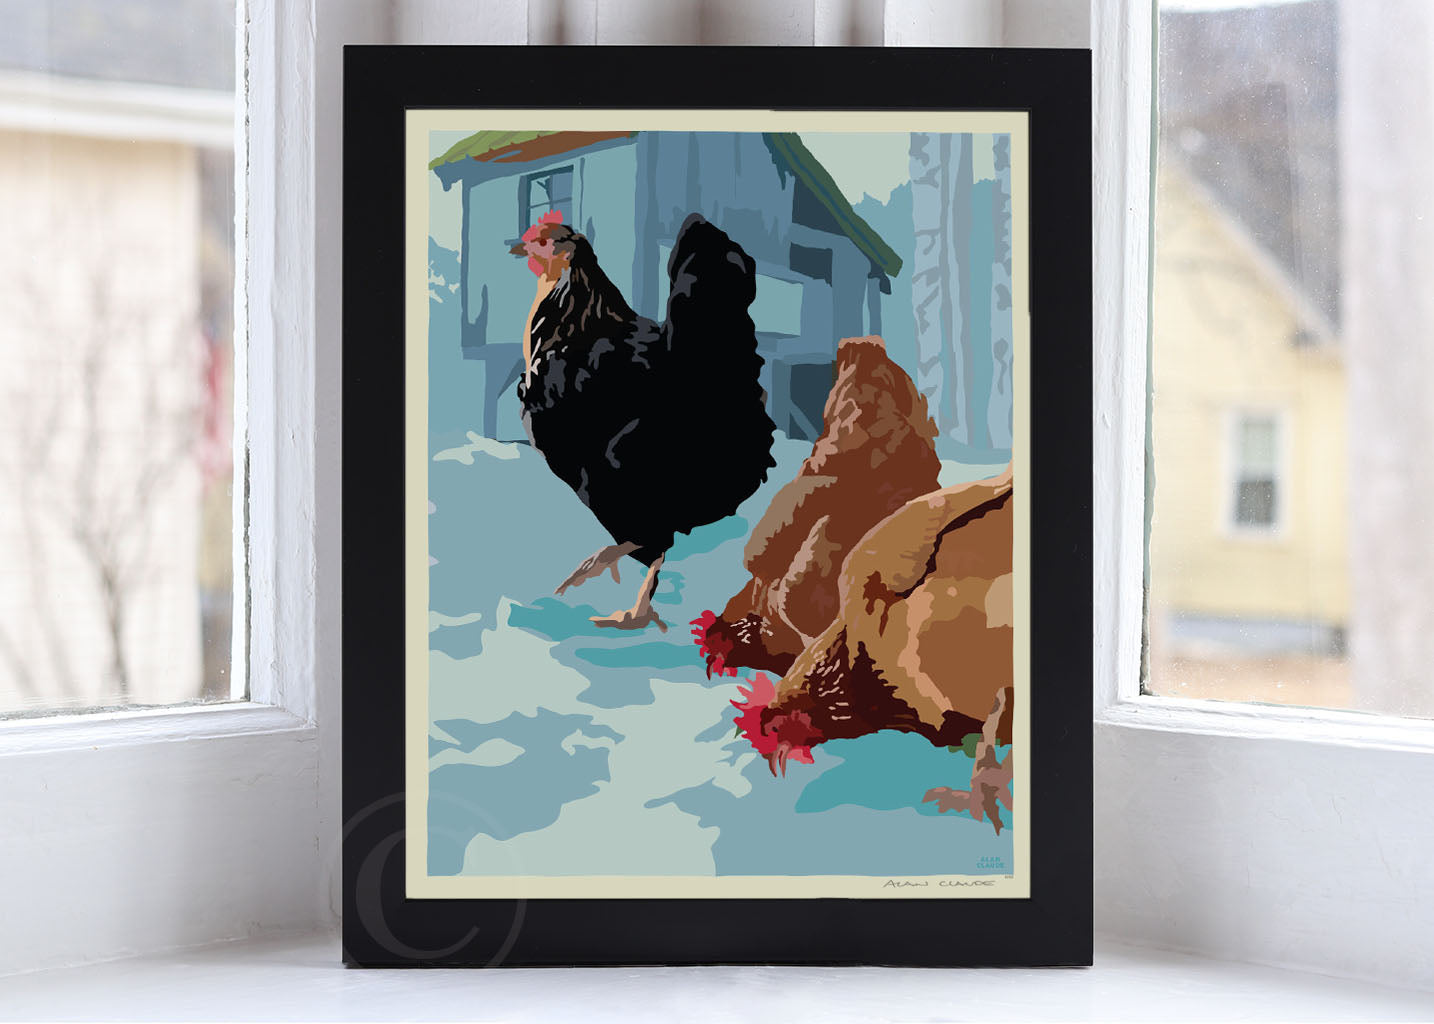 Winter Chickens Art Print 8 X 10 Framed Wall Poster By Alan Claude Alan Claude Gallery